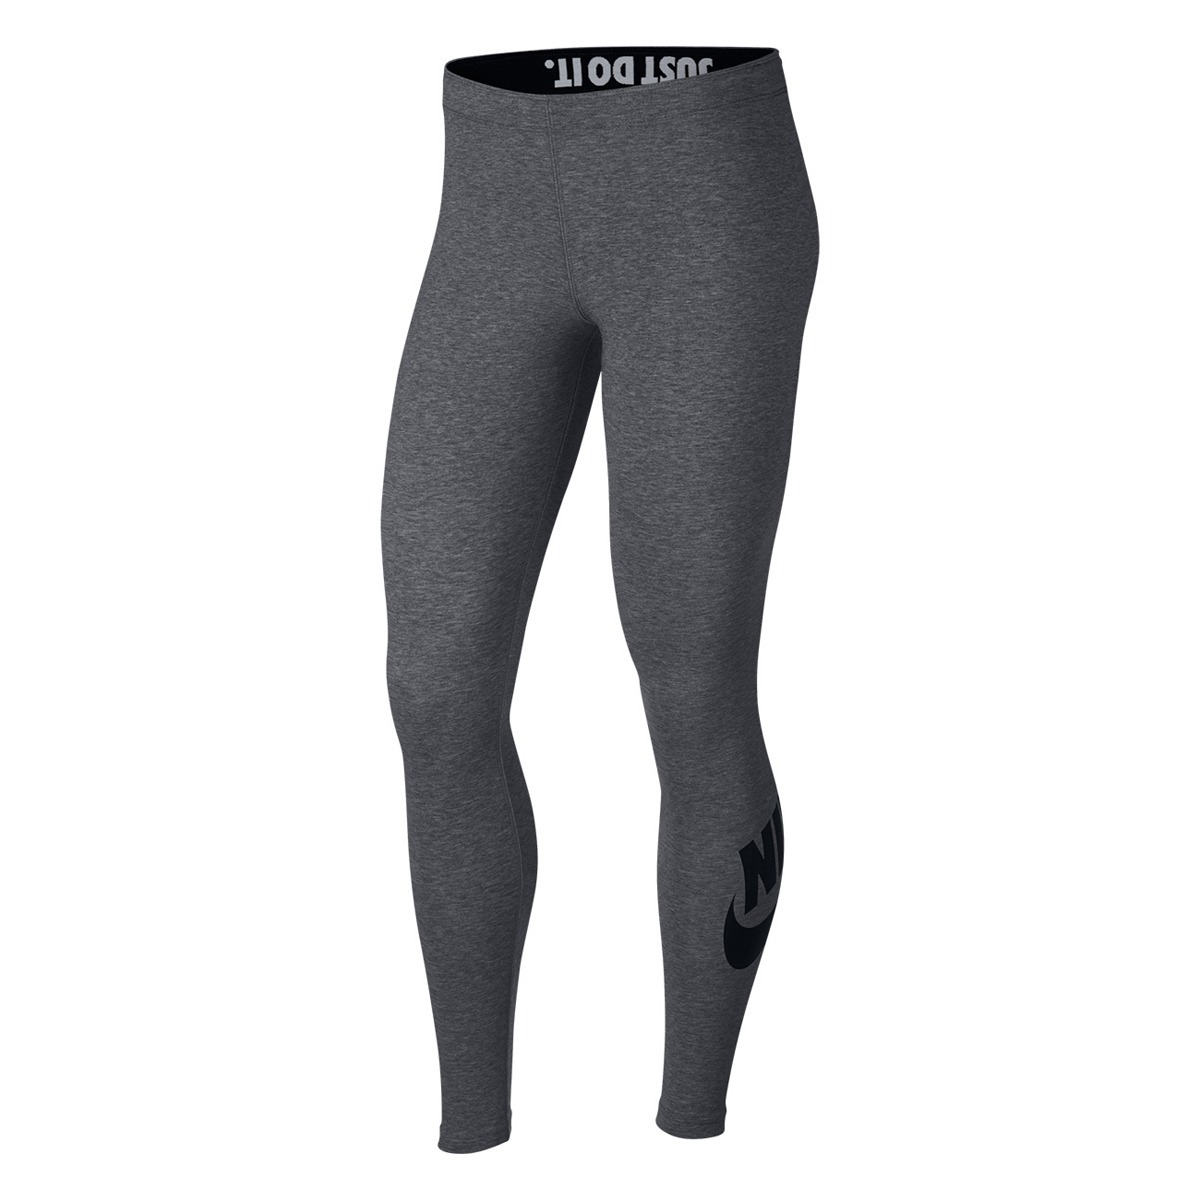 calça nike legging legasse logo feminina just do it cinza+nf. Carregando  zoom. 238bc15959333